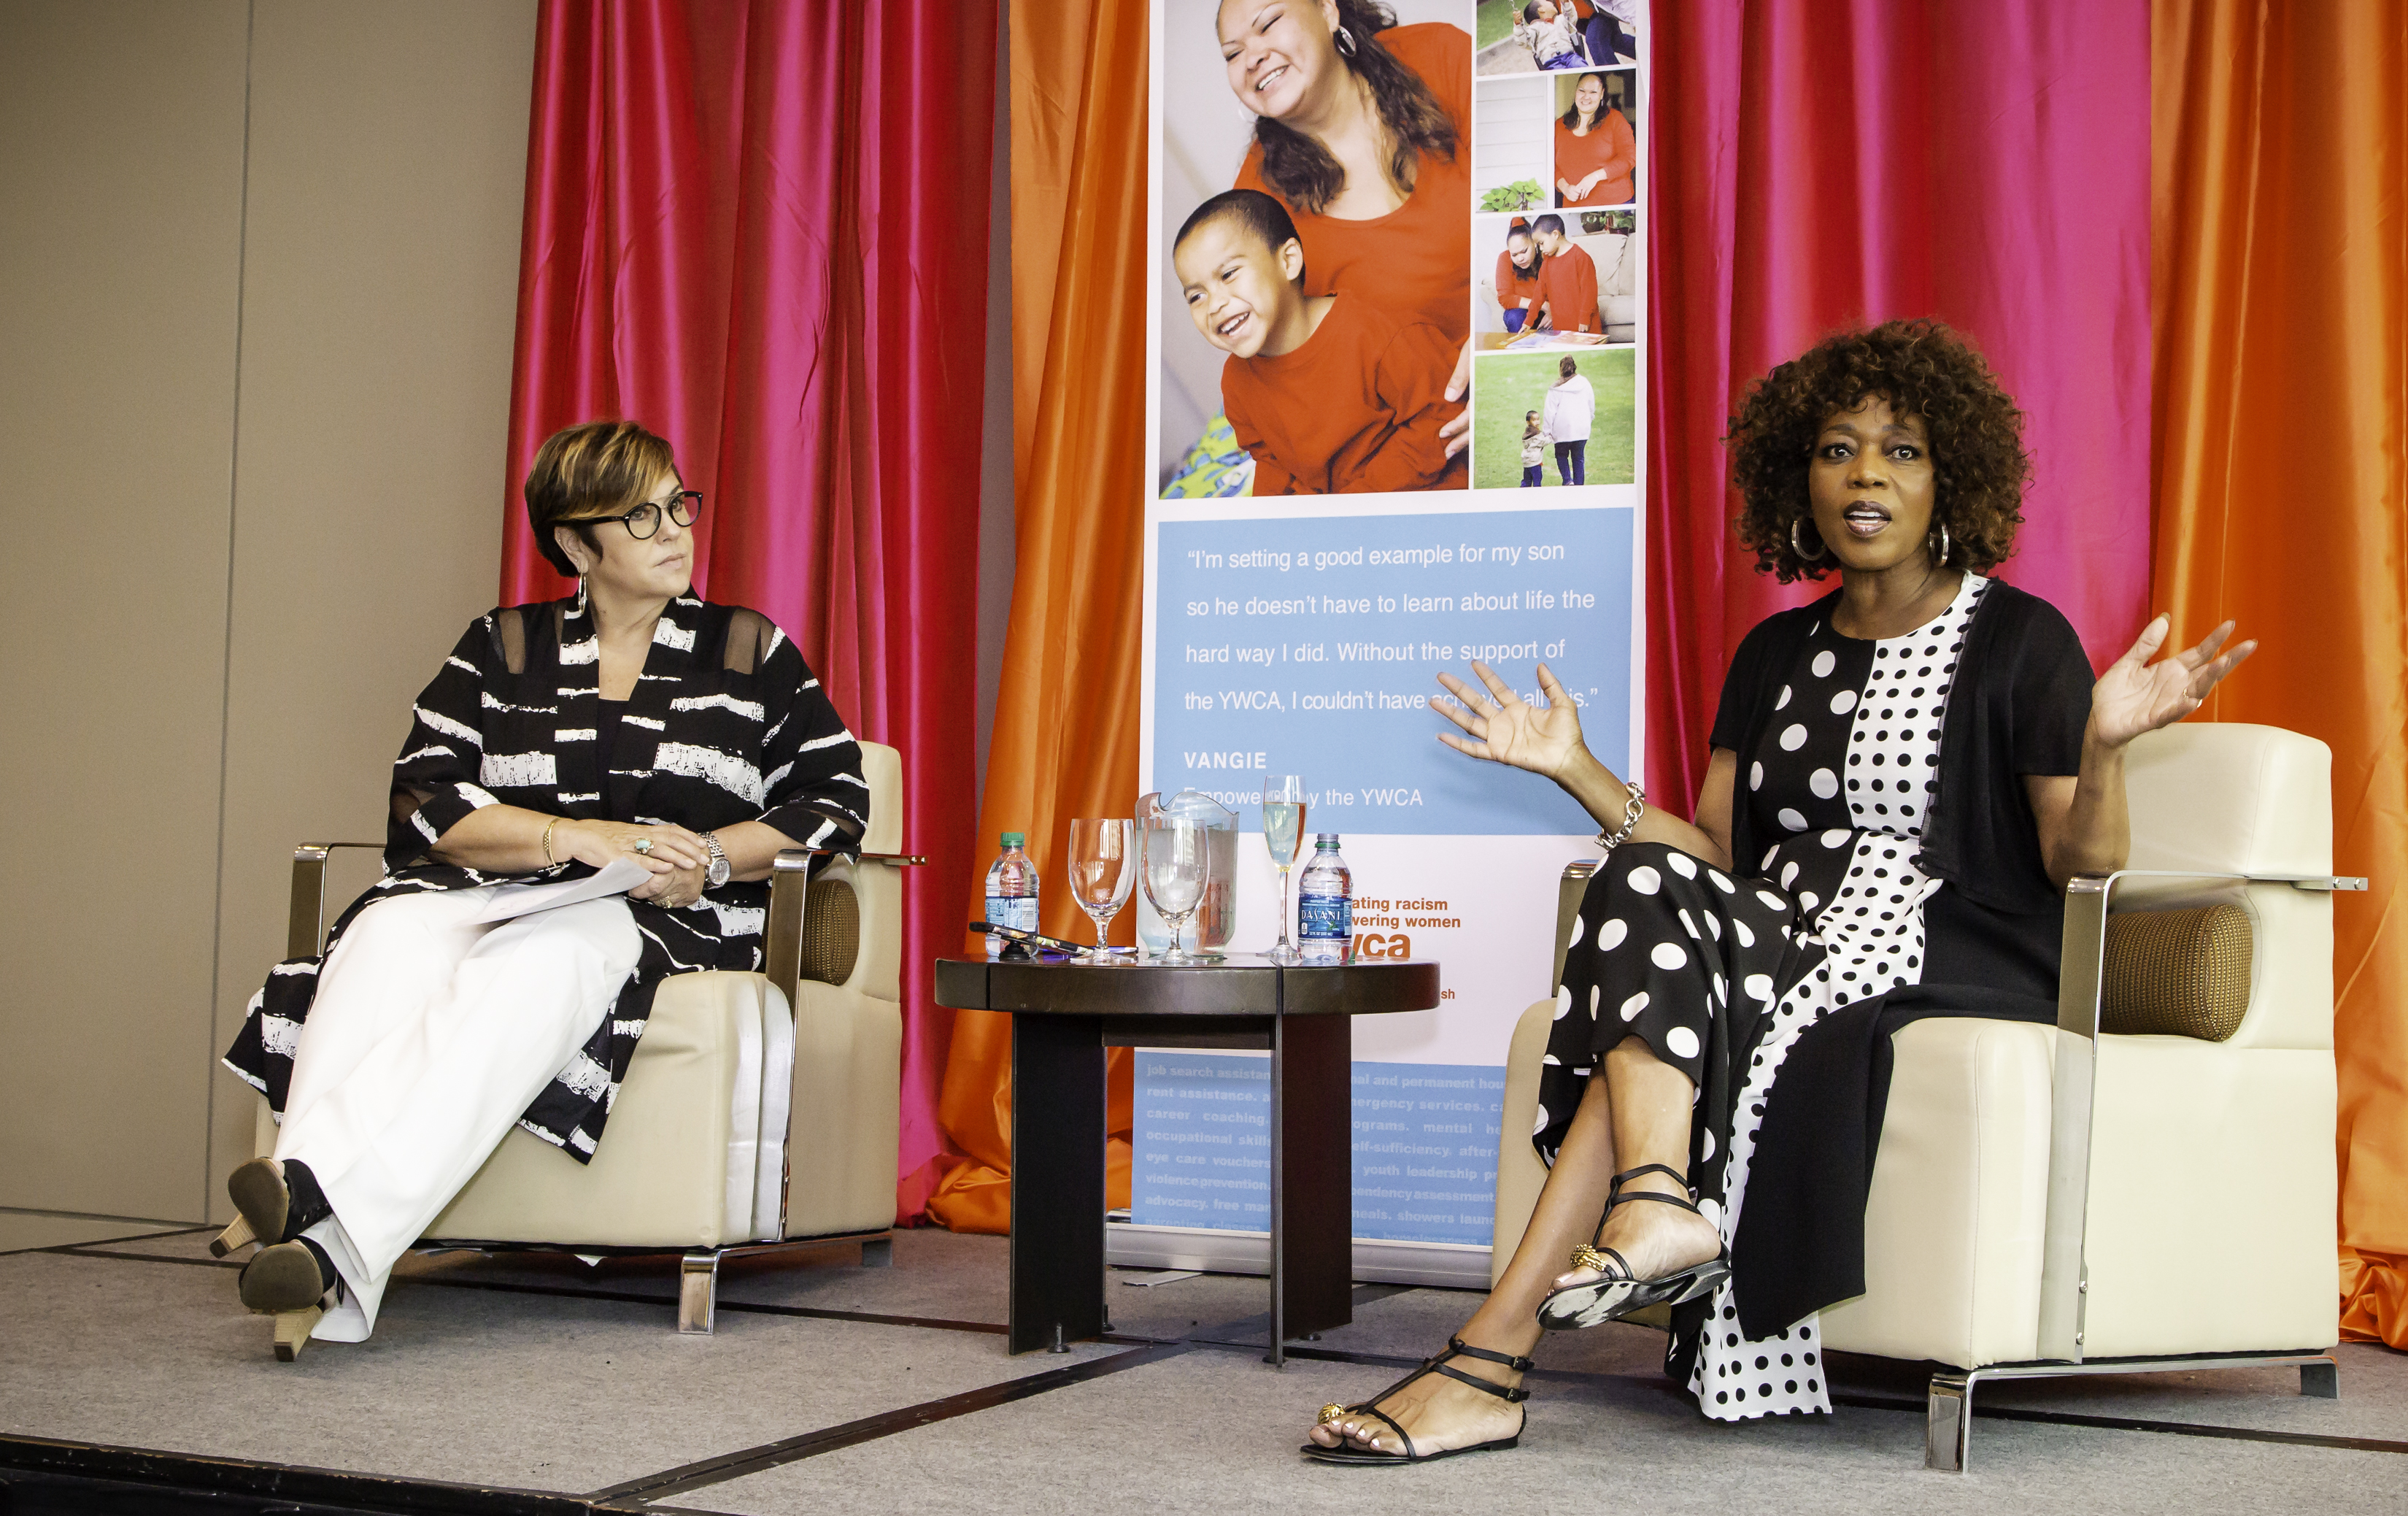 KOMO's Elisa Jaffe with Actress and Activist Alfre Woodard. Woodard brought her star power to Seattle as the keynote speaker for the YWCA Inspire Luncheon. Photo courtesy of YWCA.